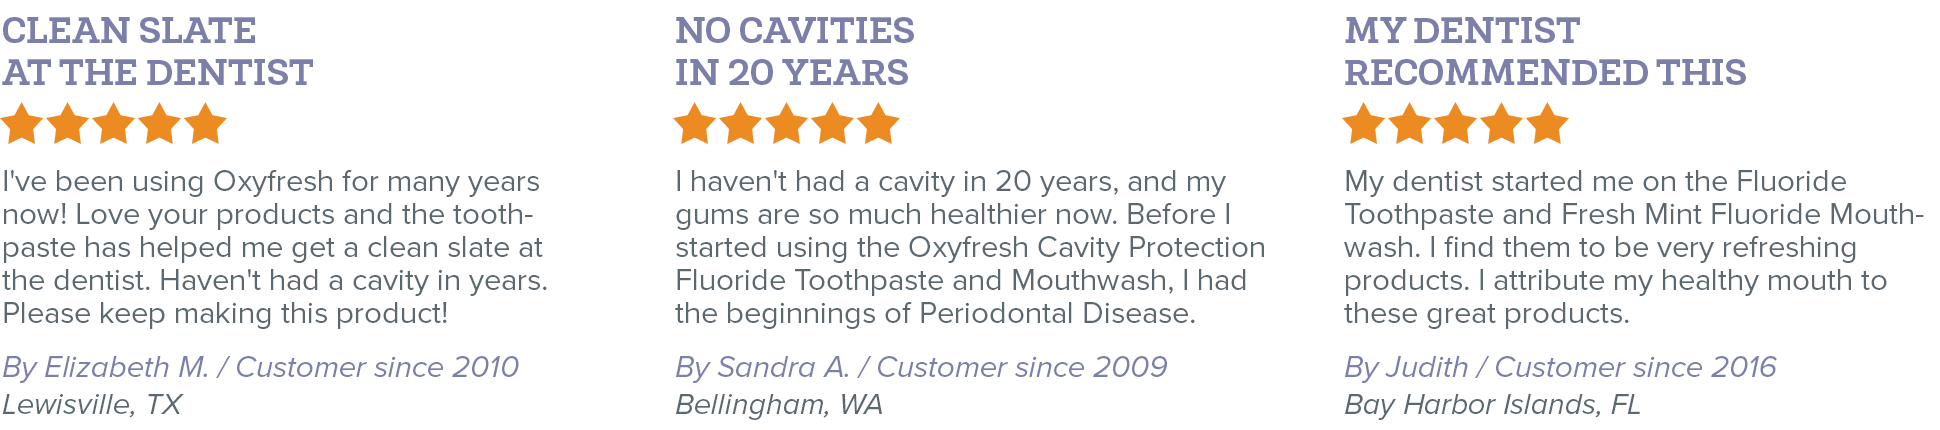 Oxyfresh - Eliminate Bad Breath & Fight Cavities - Low Abrasion Fluoride Toothpaste and Mouthwash Reviews